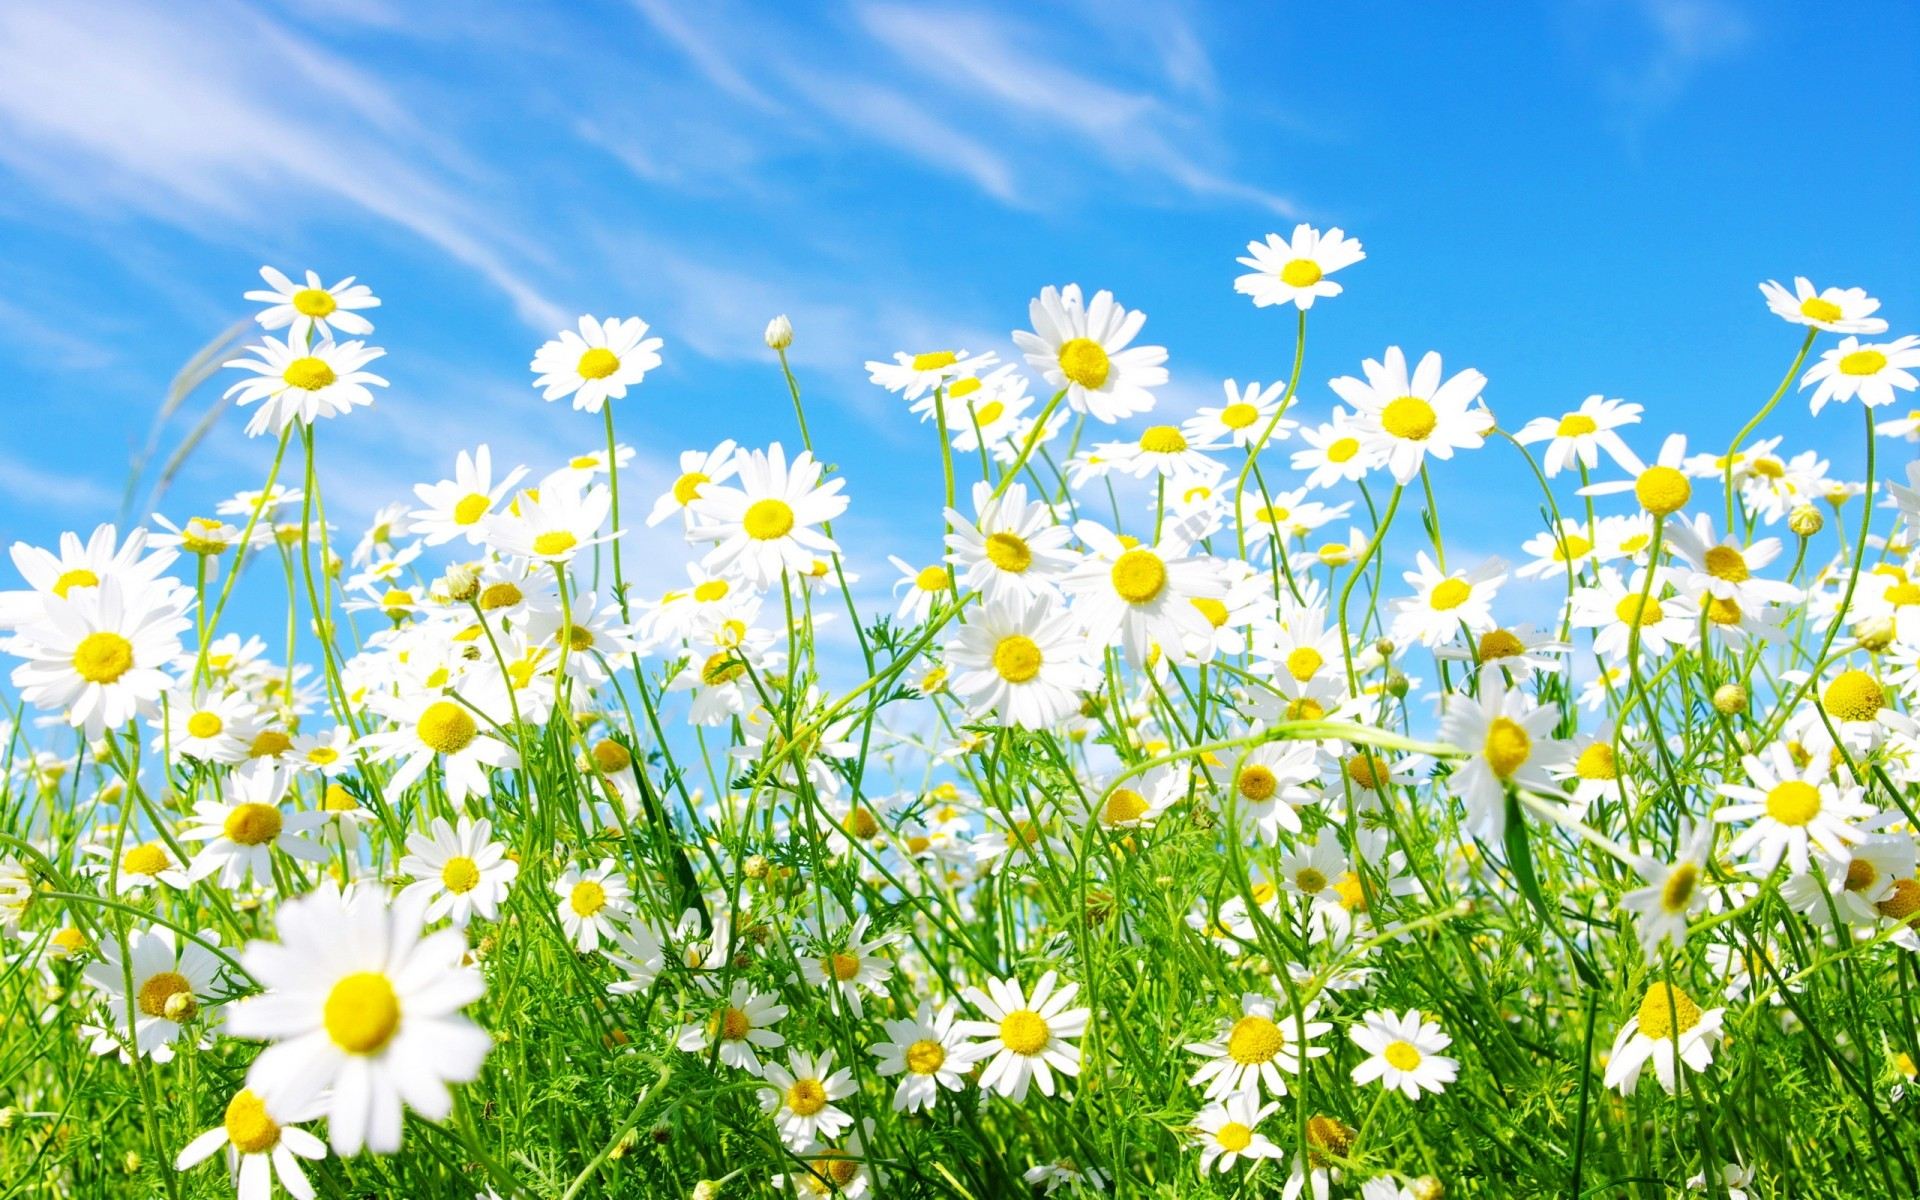 spring daisy. iphone wallpapers for free.